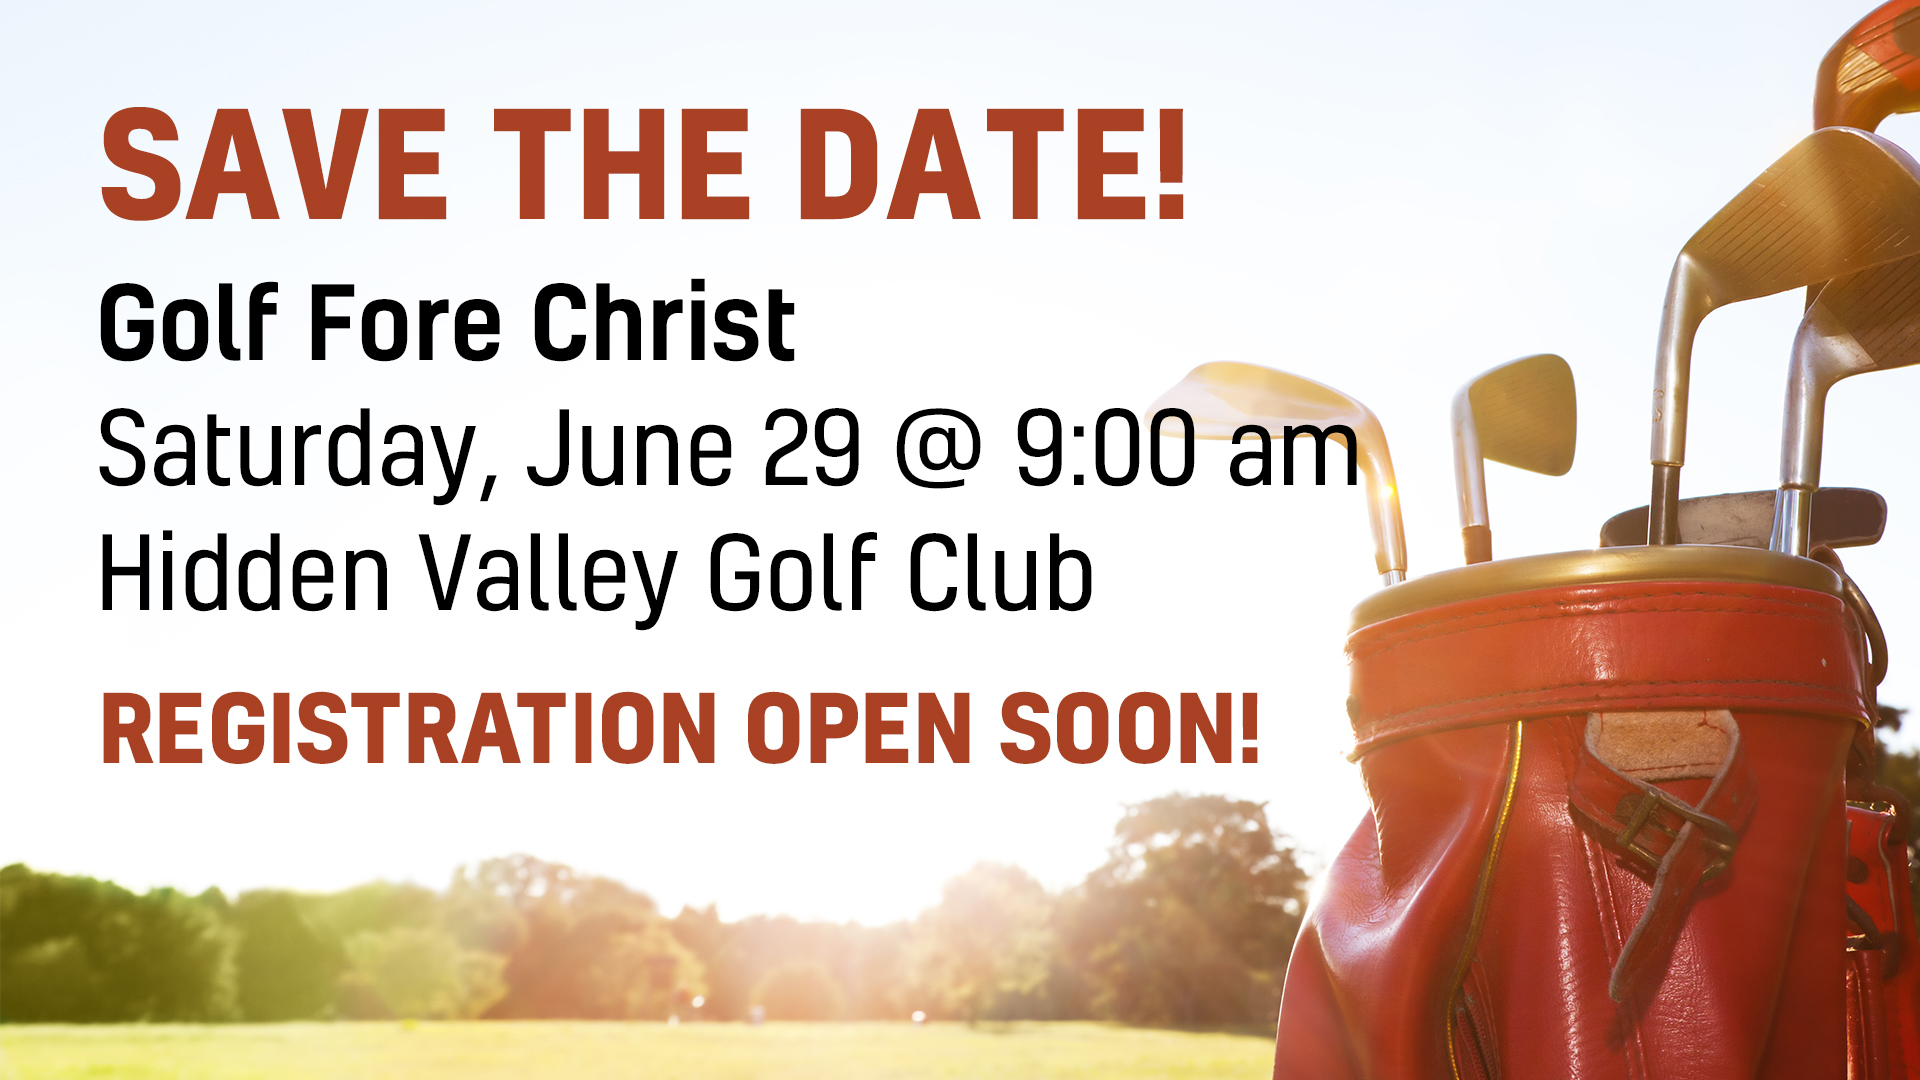 Save The Date_Golf Fore Christ_01.27.19,jpg.jpg